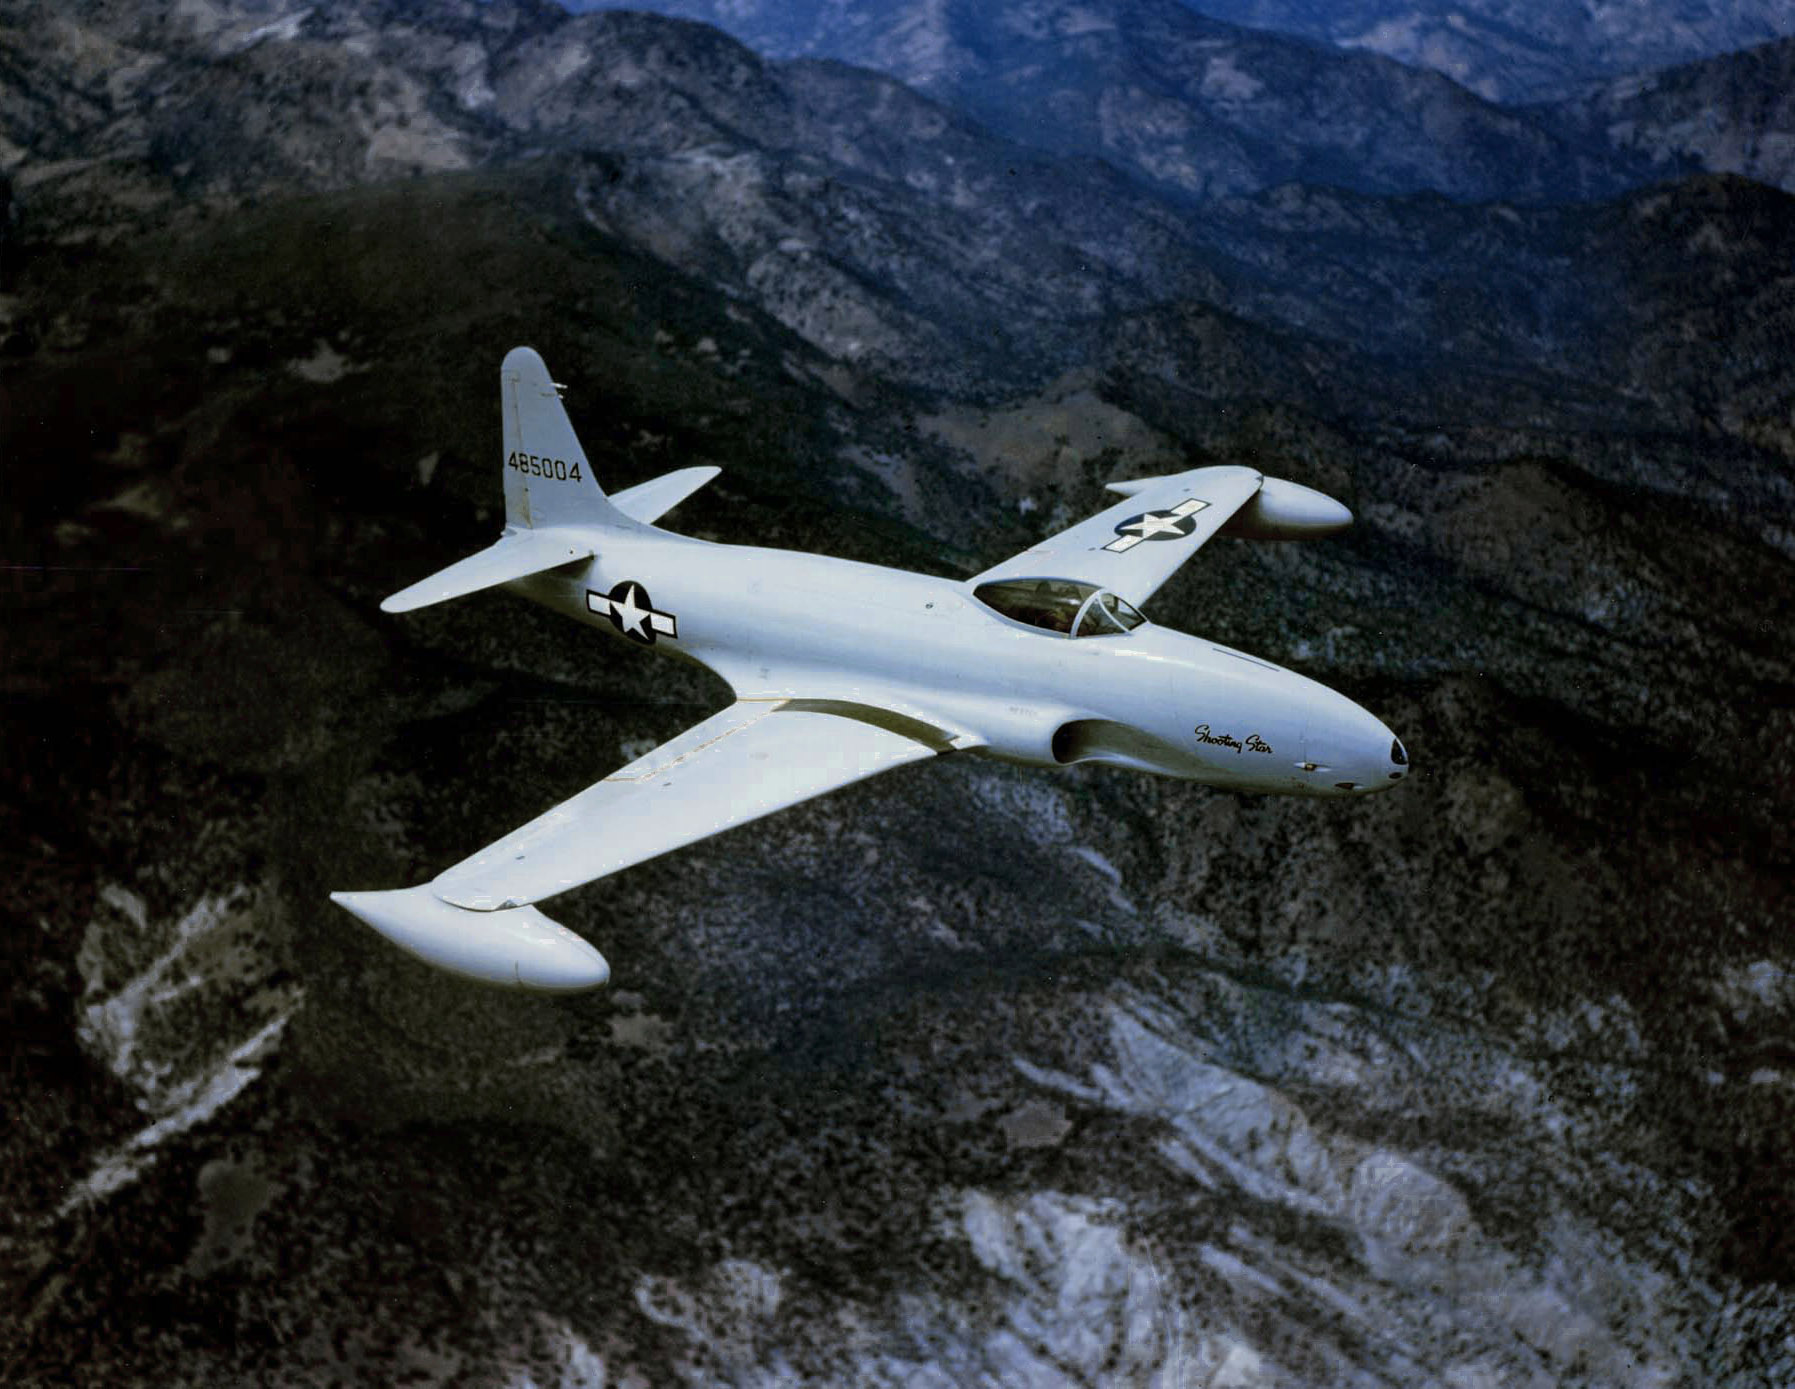 A U.S. Air Force Lockheed P-80A-1-LO Shooting Star (s/n 44-85004) in flight.